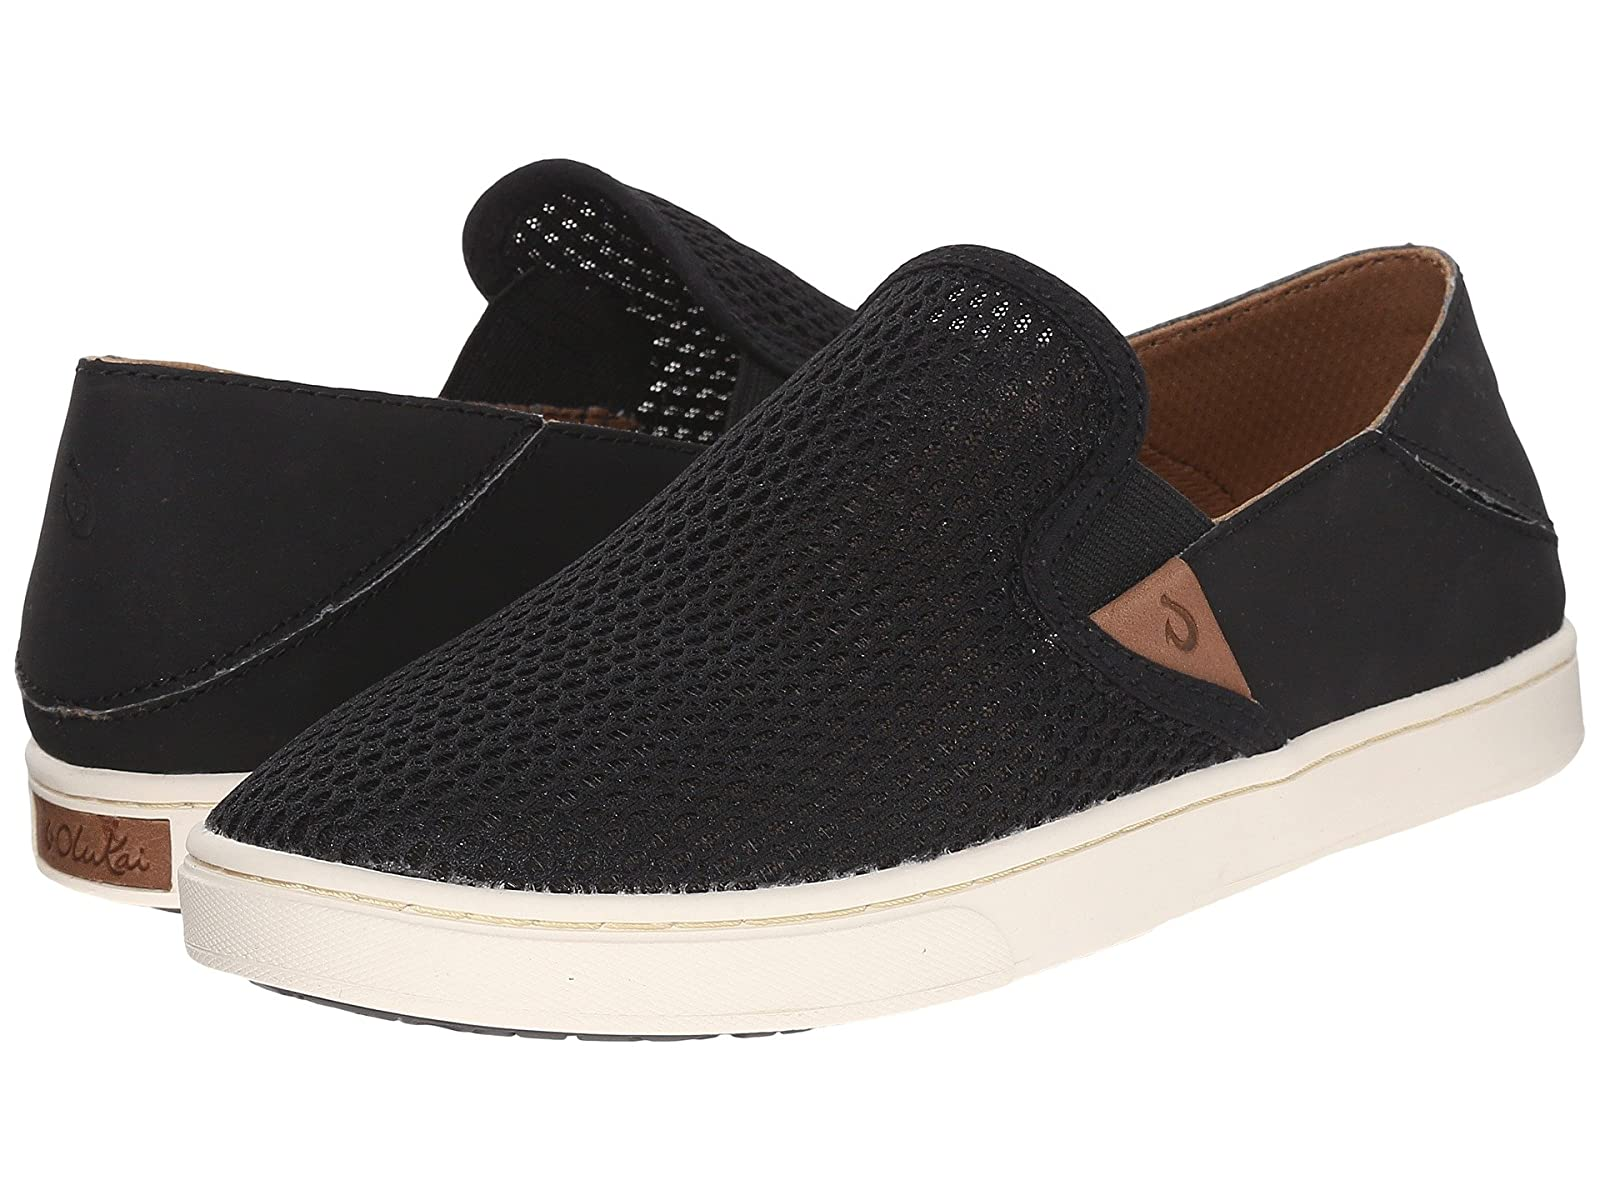 OluKai PehueaAtmospheric grades have affordable shoes